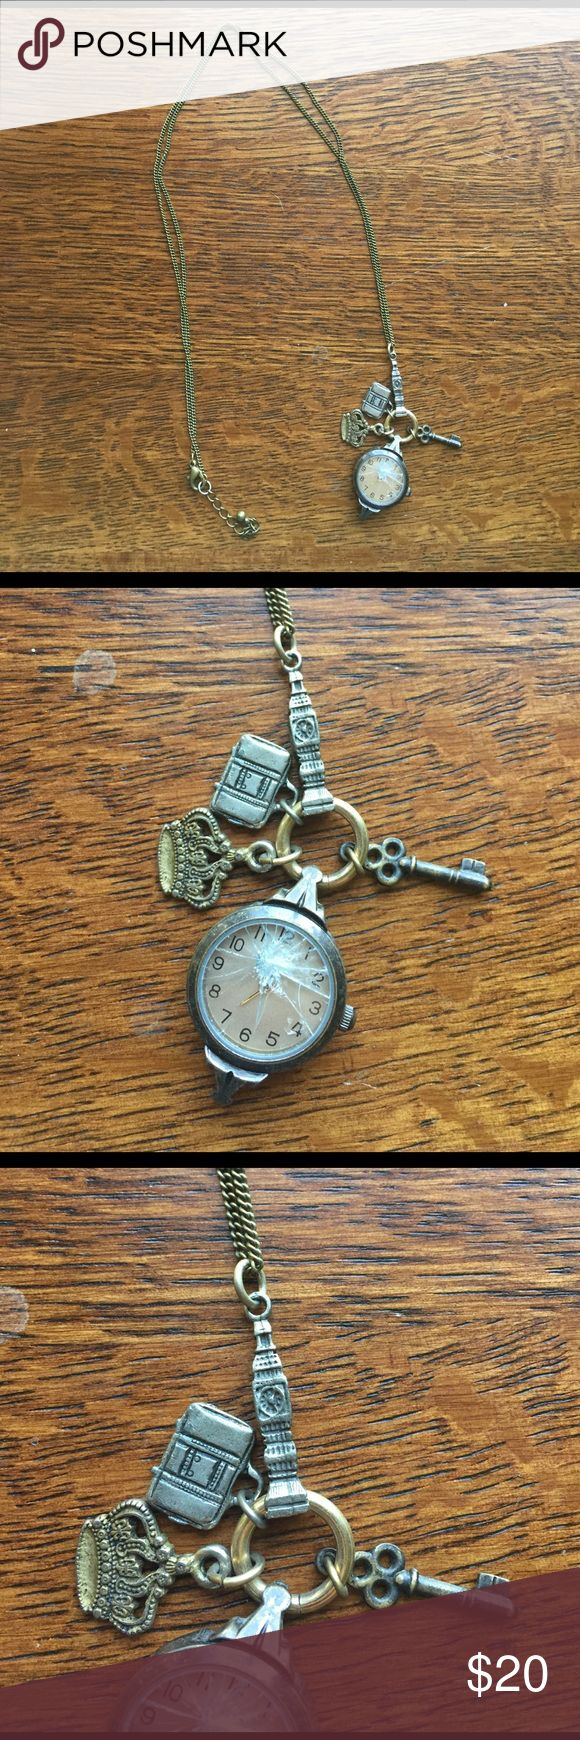 Anthropologie bronze British themed clock necklace Awesome bronze British themed clock necklace! The glass on the clock is broken but I believe it is an easy fix for any watch specialist. The clock did work originally; however, it needs a new battery I believe. Super cute charms of Big Ben, the Royal Crown, a vintage key, and a suitcase. Priced appropriately for damage. Anthropologie Jewelry Necklaces